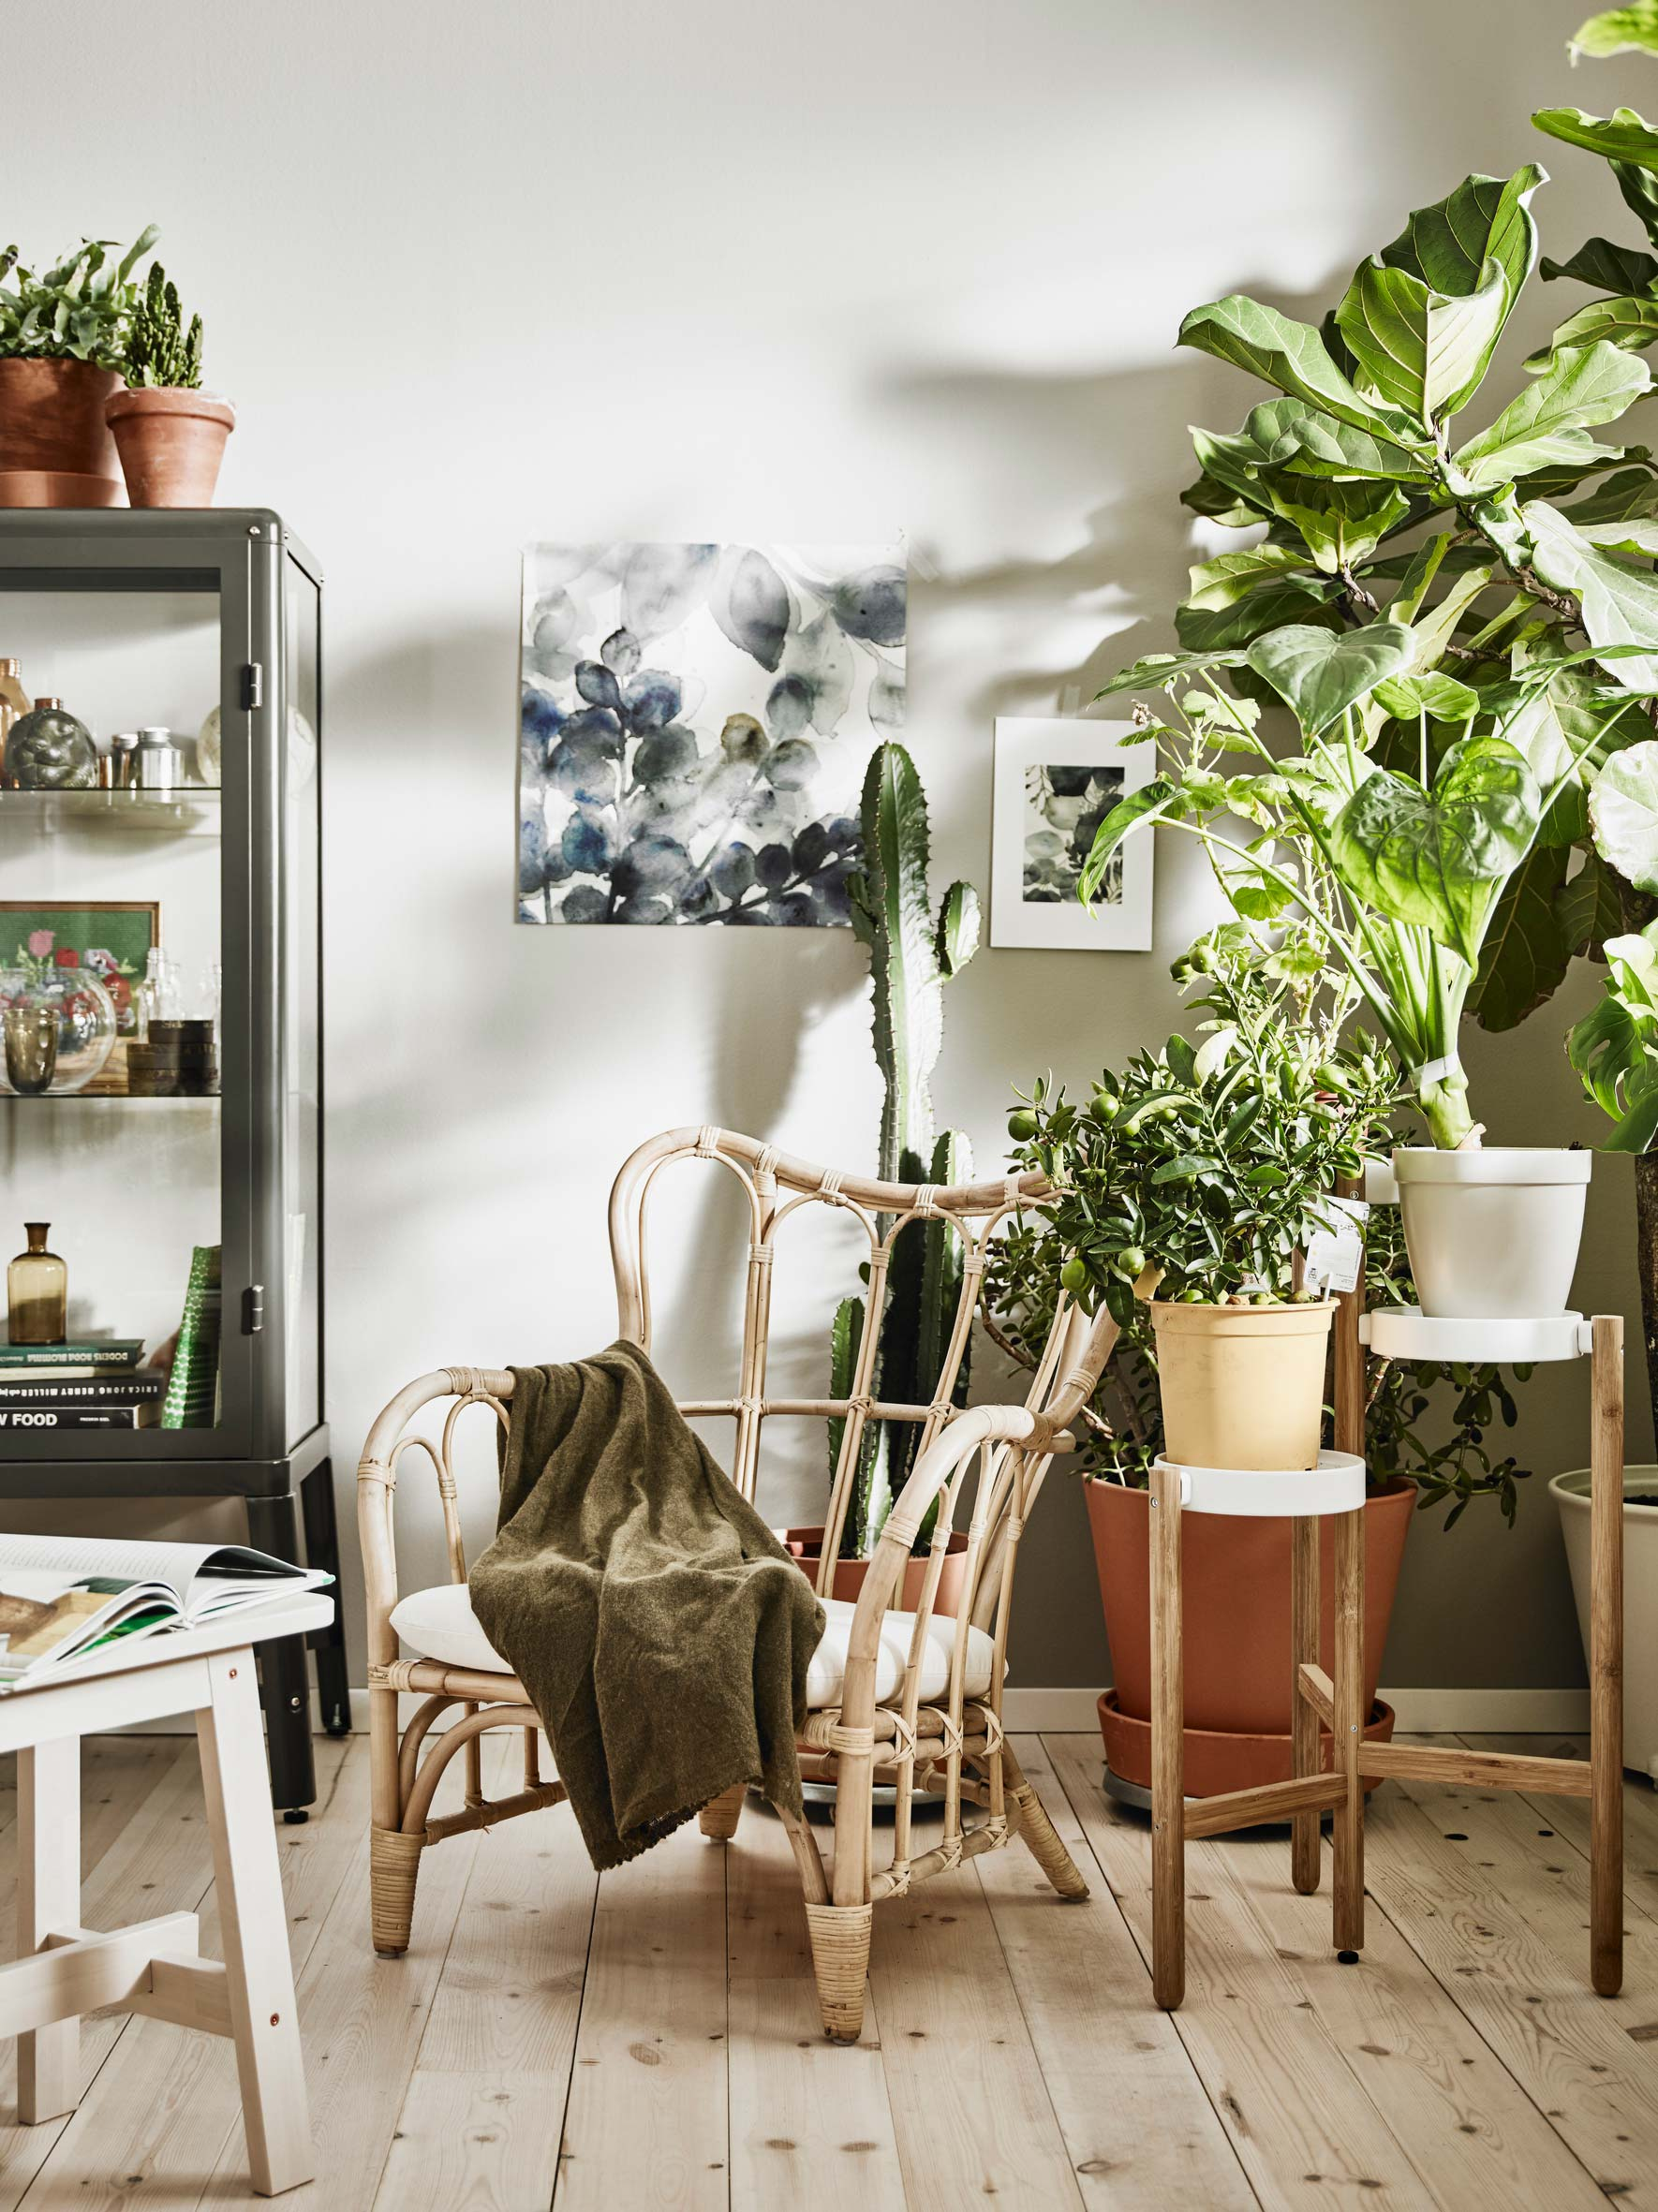 Das sind die top 10 interior trends f r 2018 who is mocca for Interior design inspiration 2018